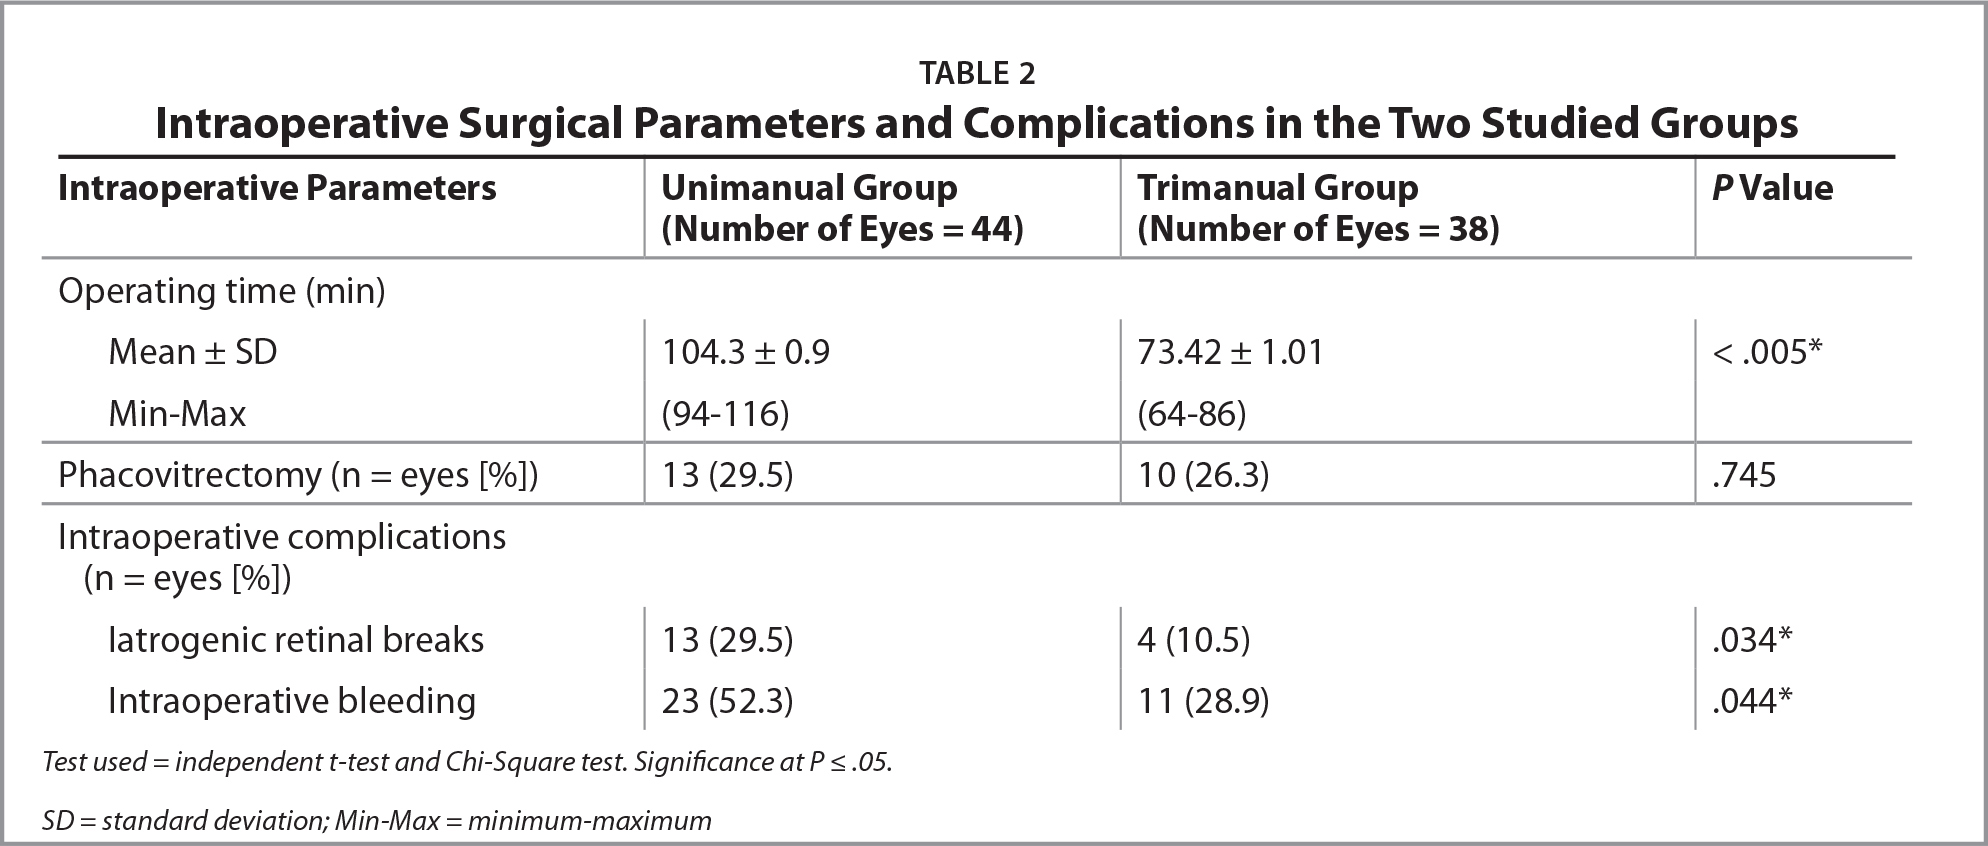 Intraoperative Surgical Parameters and Complications in the Two Studied Groups